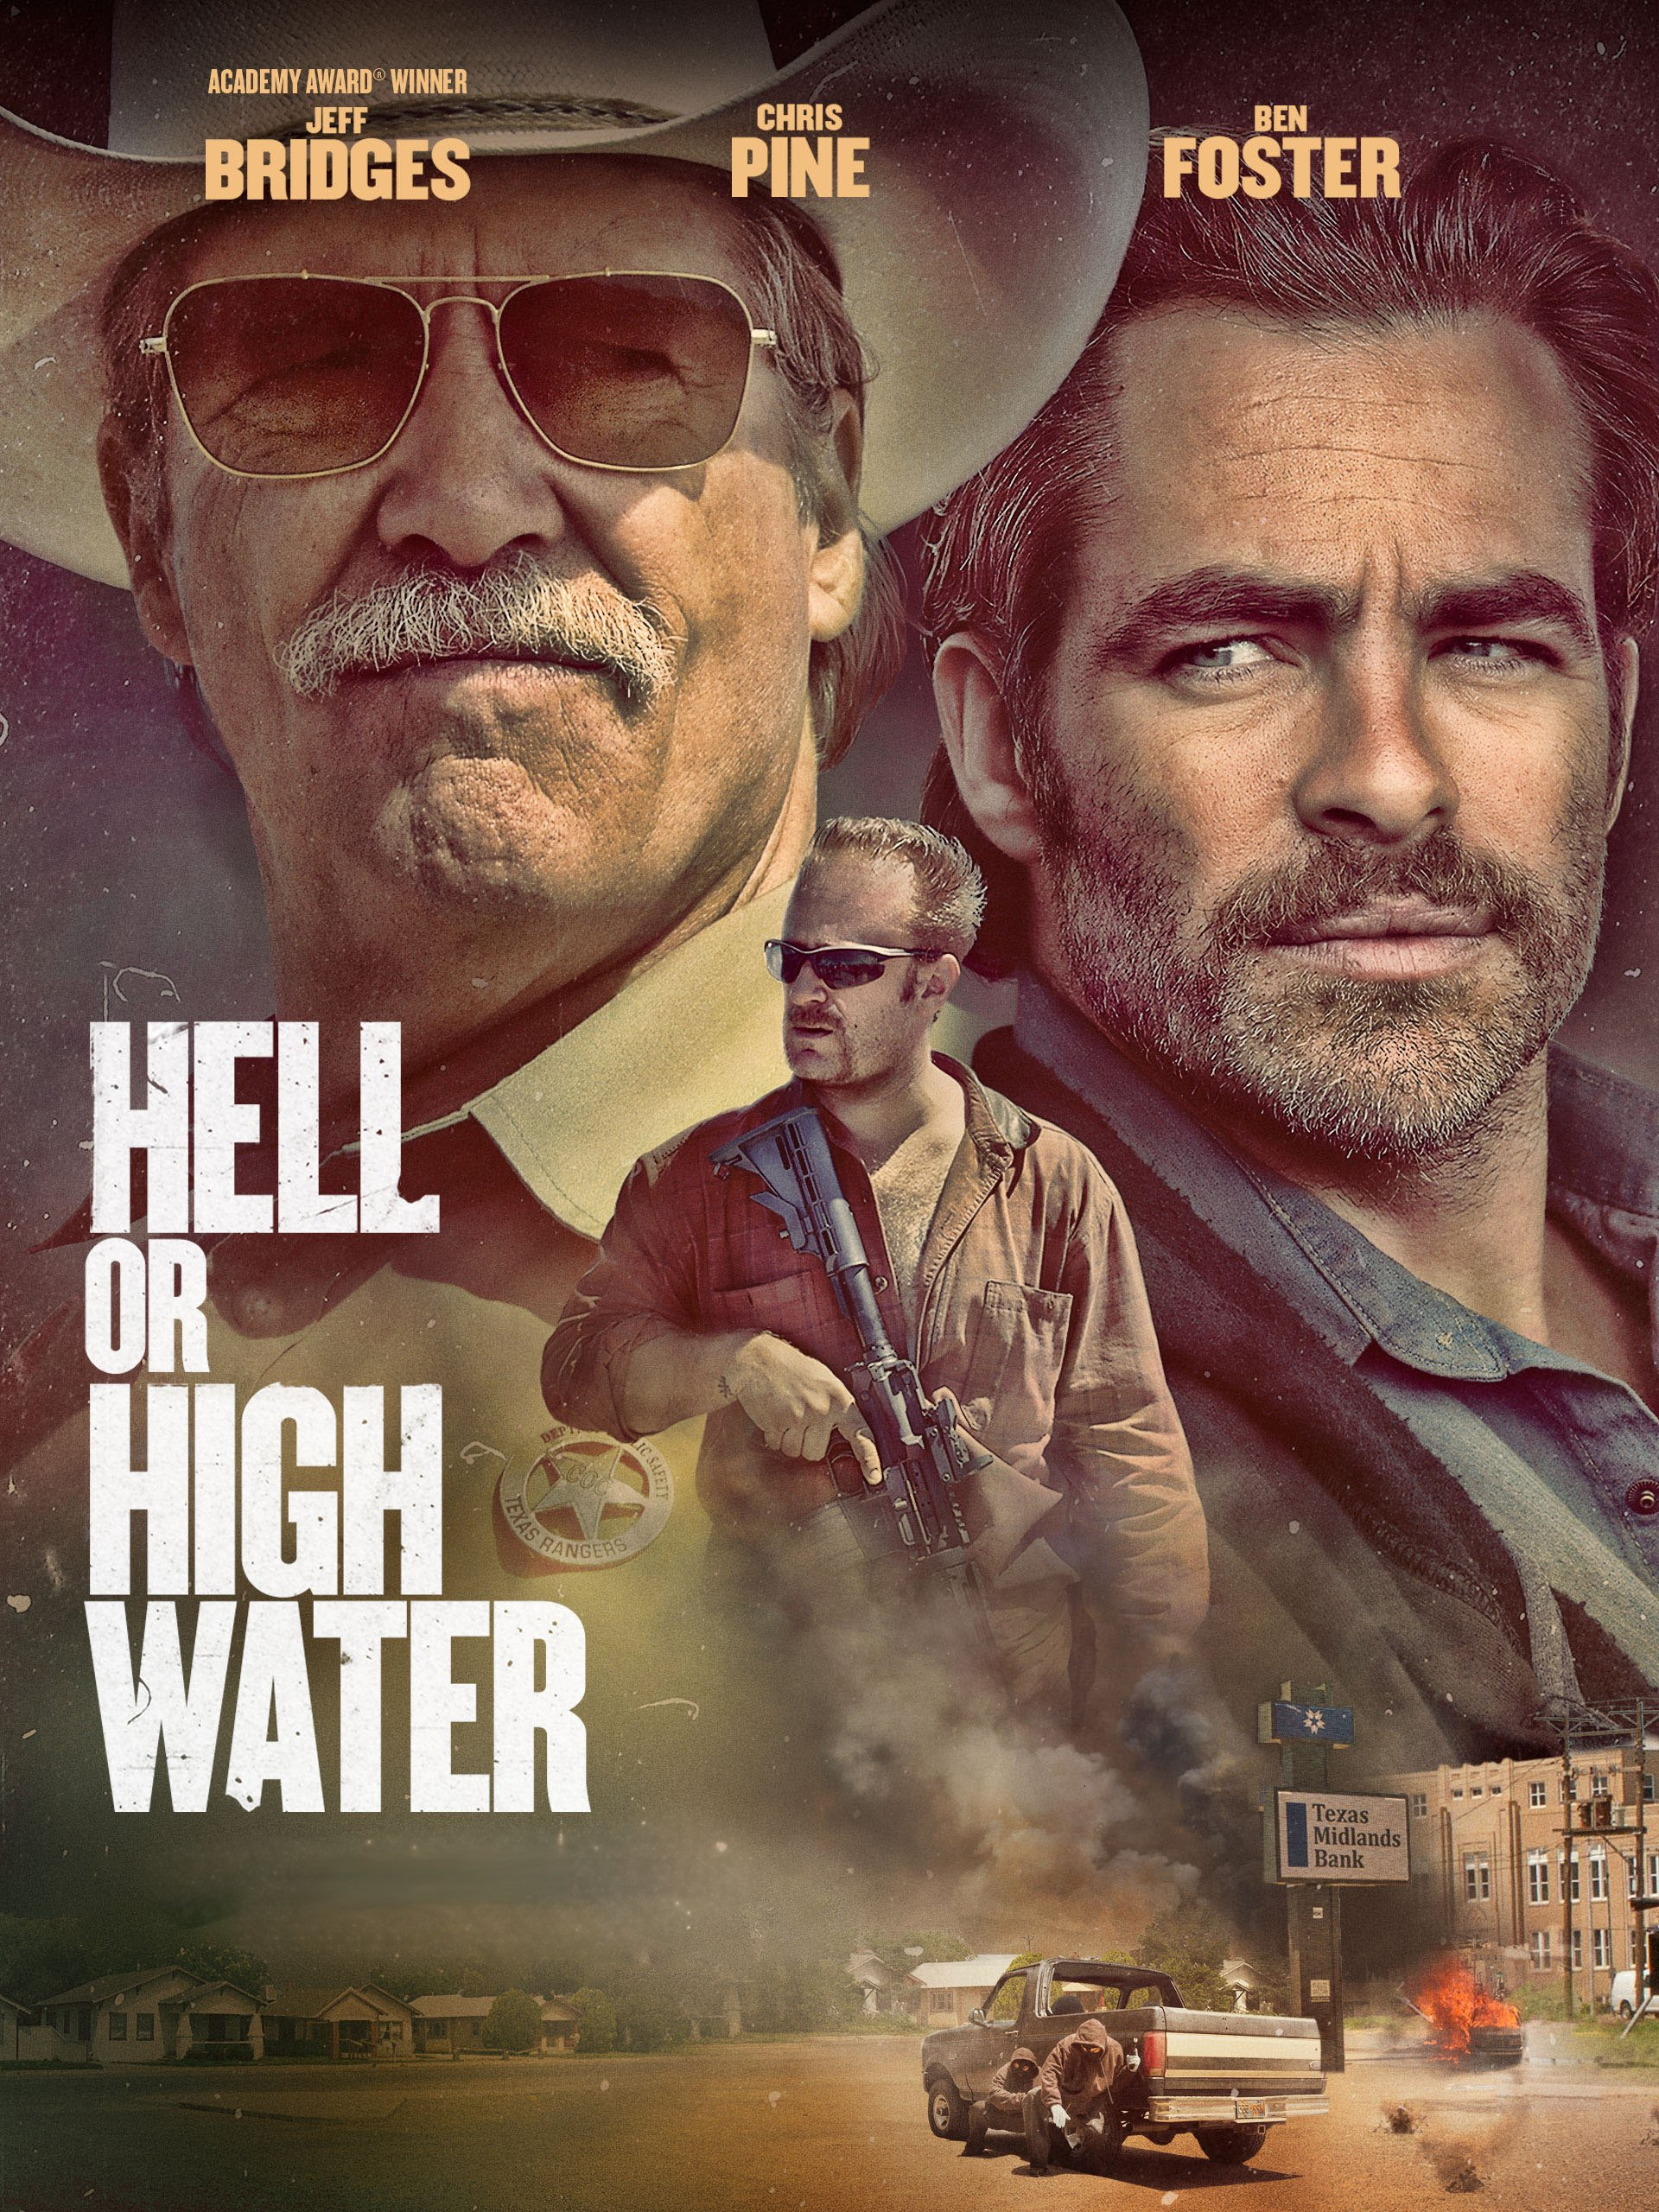 Amazon.com: Hell or High Water: Jeff Bridges, Chris Pine, Ben ...